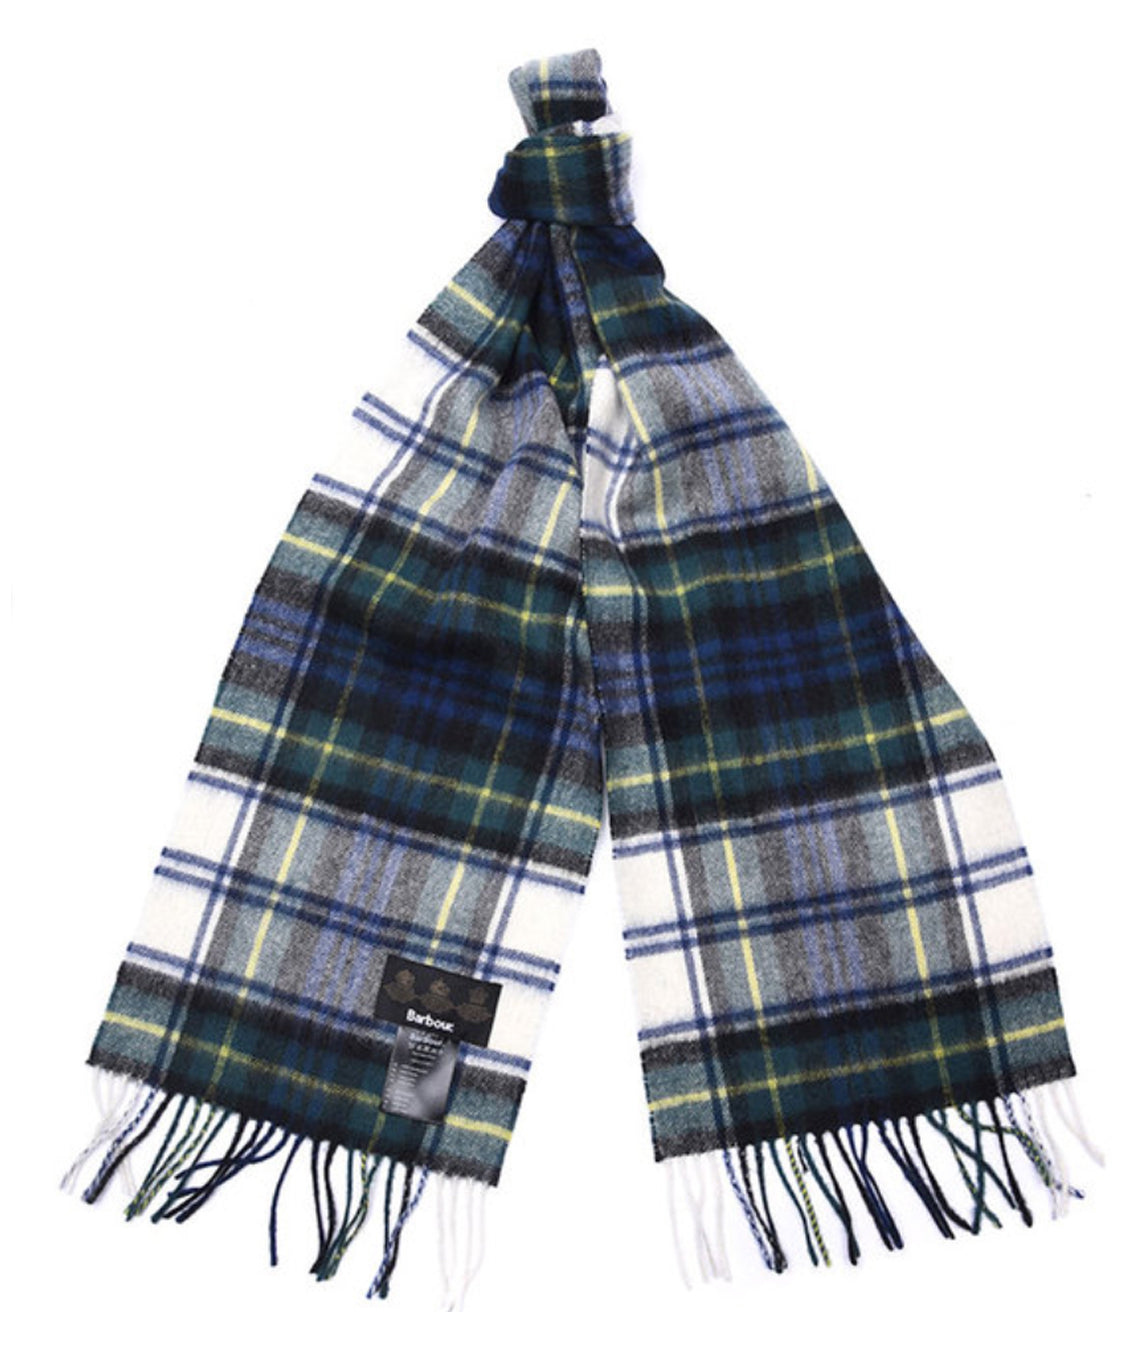 Barbour Shilhope Check Scarf - North Shore Saddlery